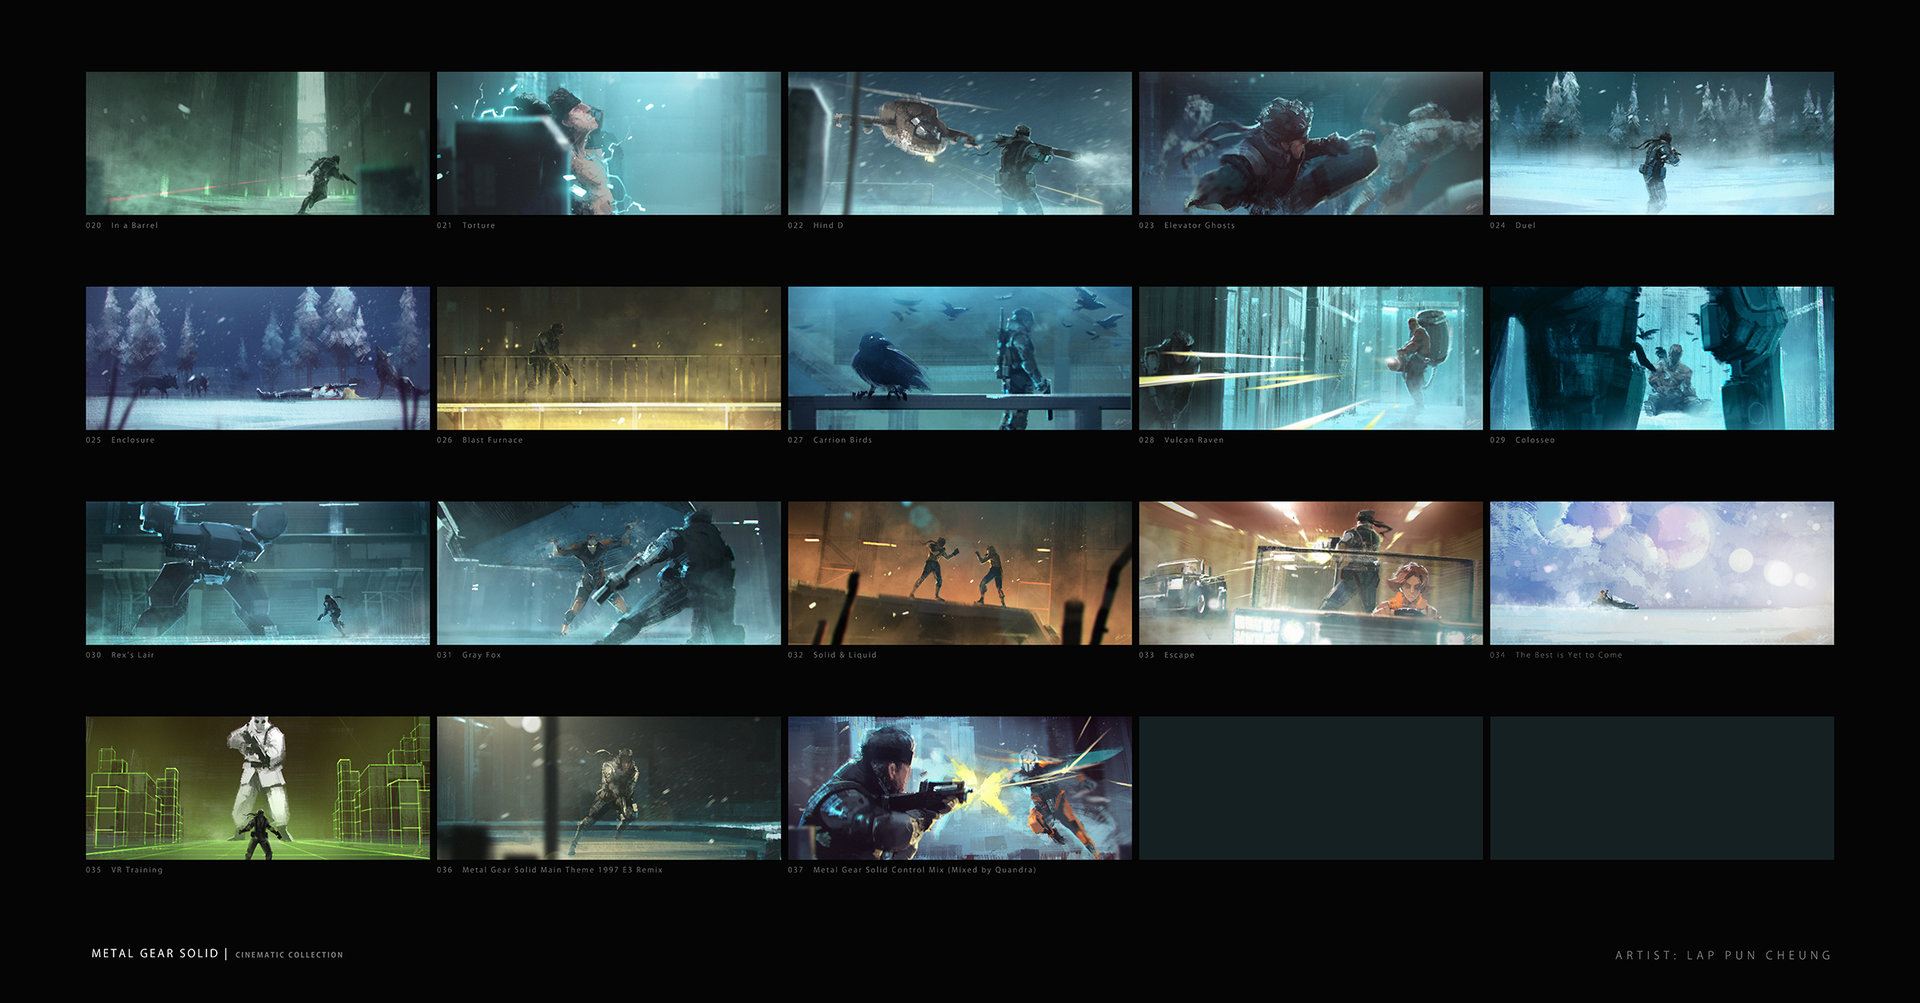 Lap pun cheung metal gear solid collection 002 online